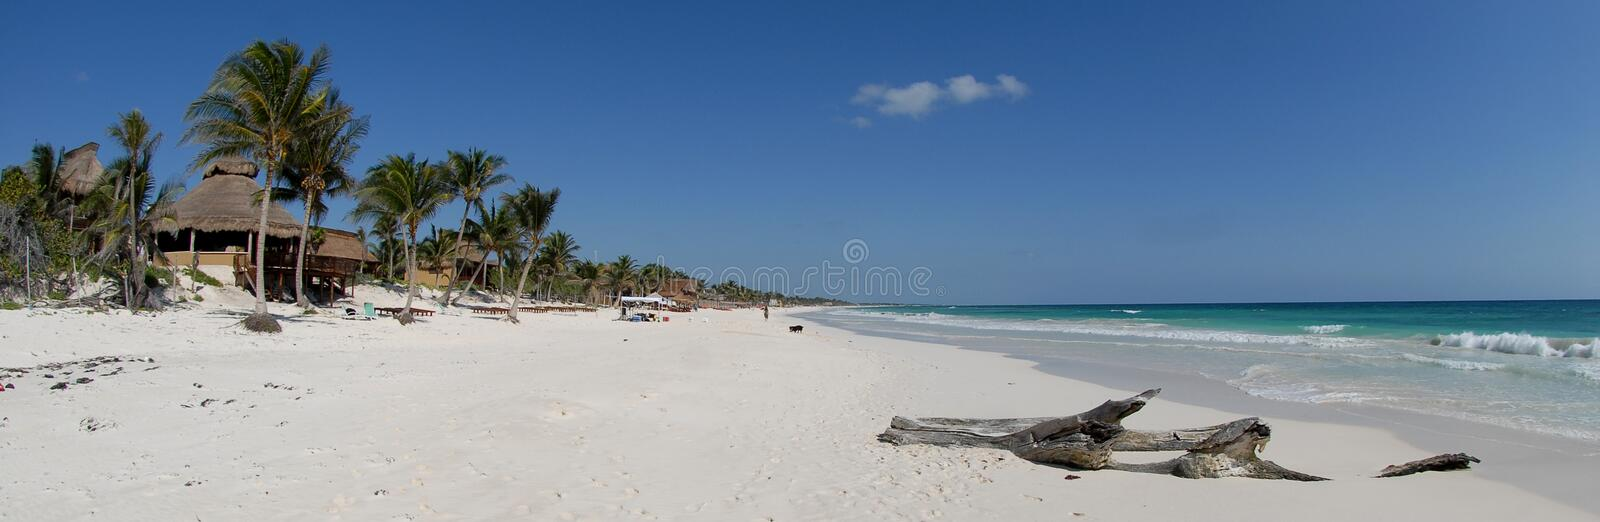 Download Tropical beach paradise stock photo. Image of colours - 3871790